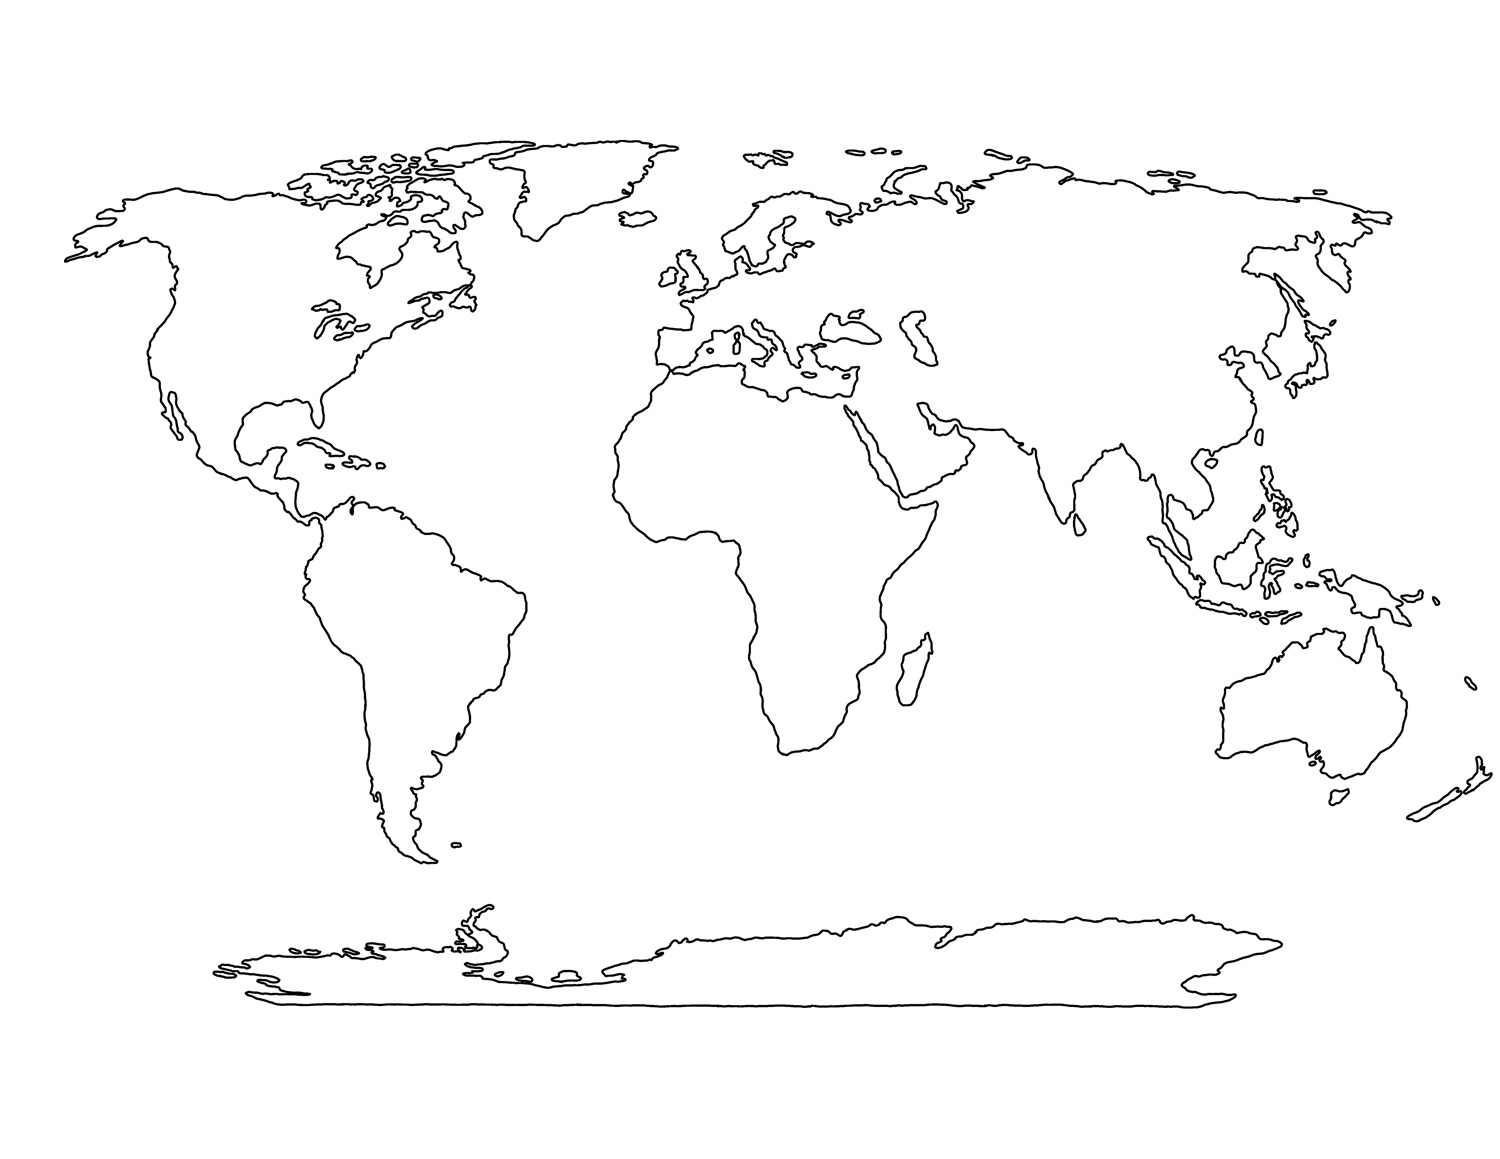 Printable Blank World Map Template For Students And Kids - Blank map of the world for students